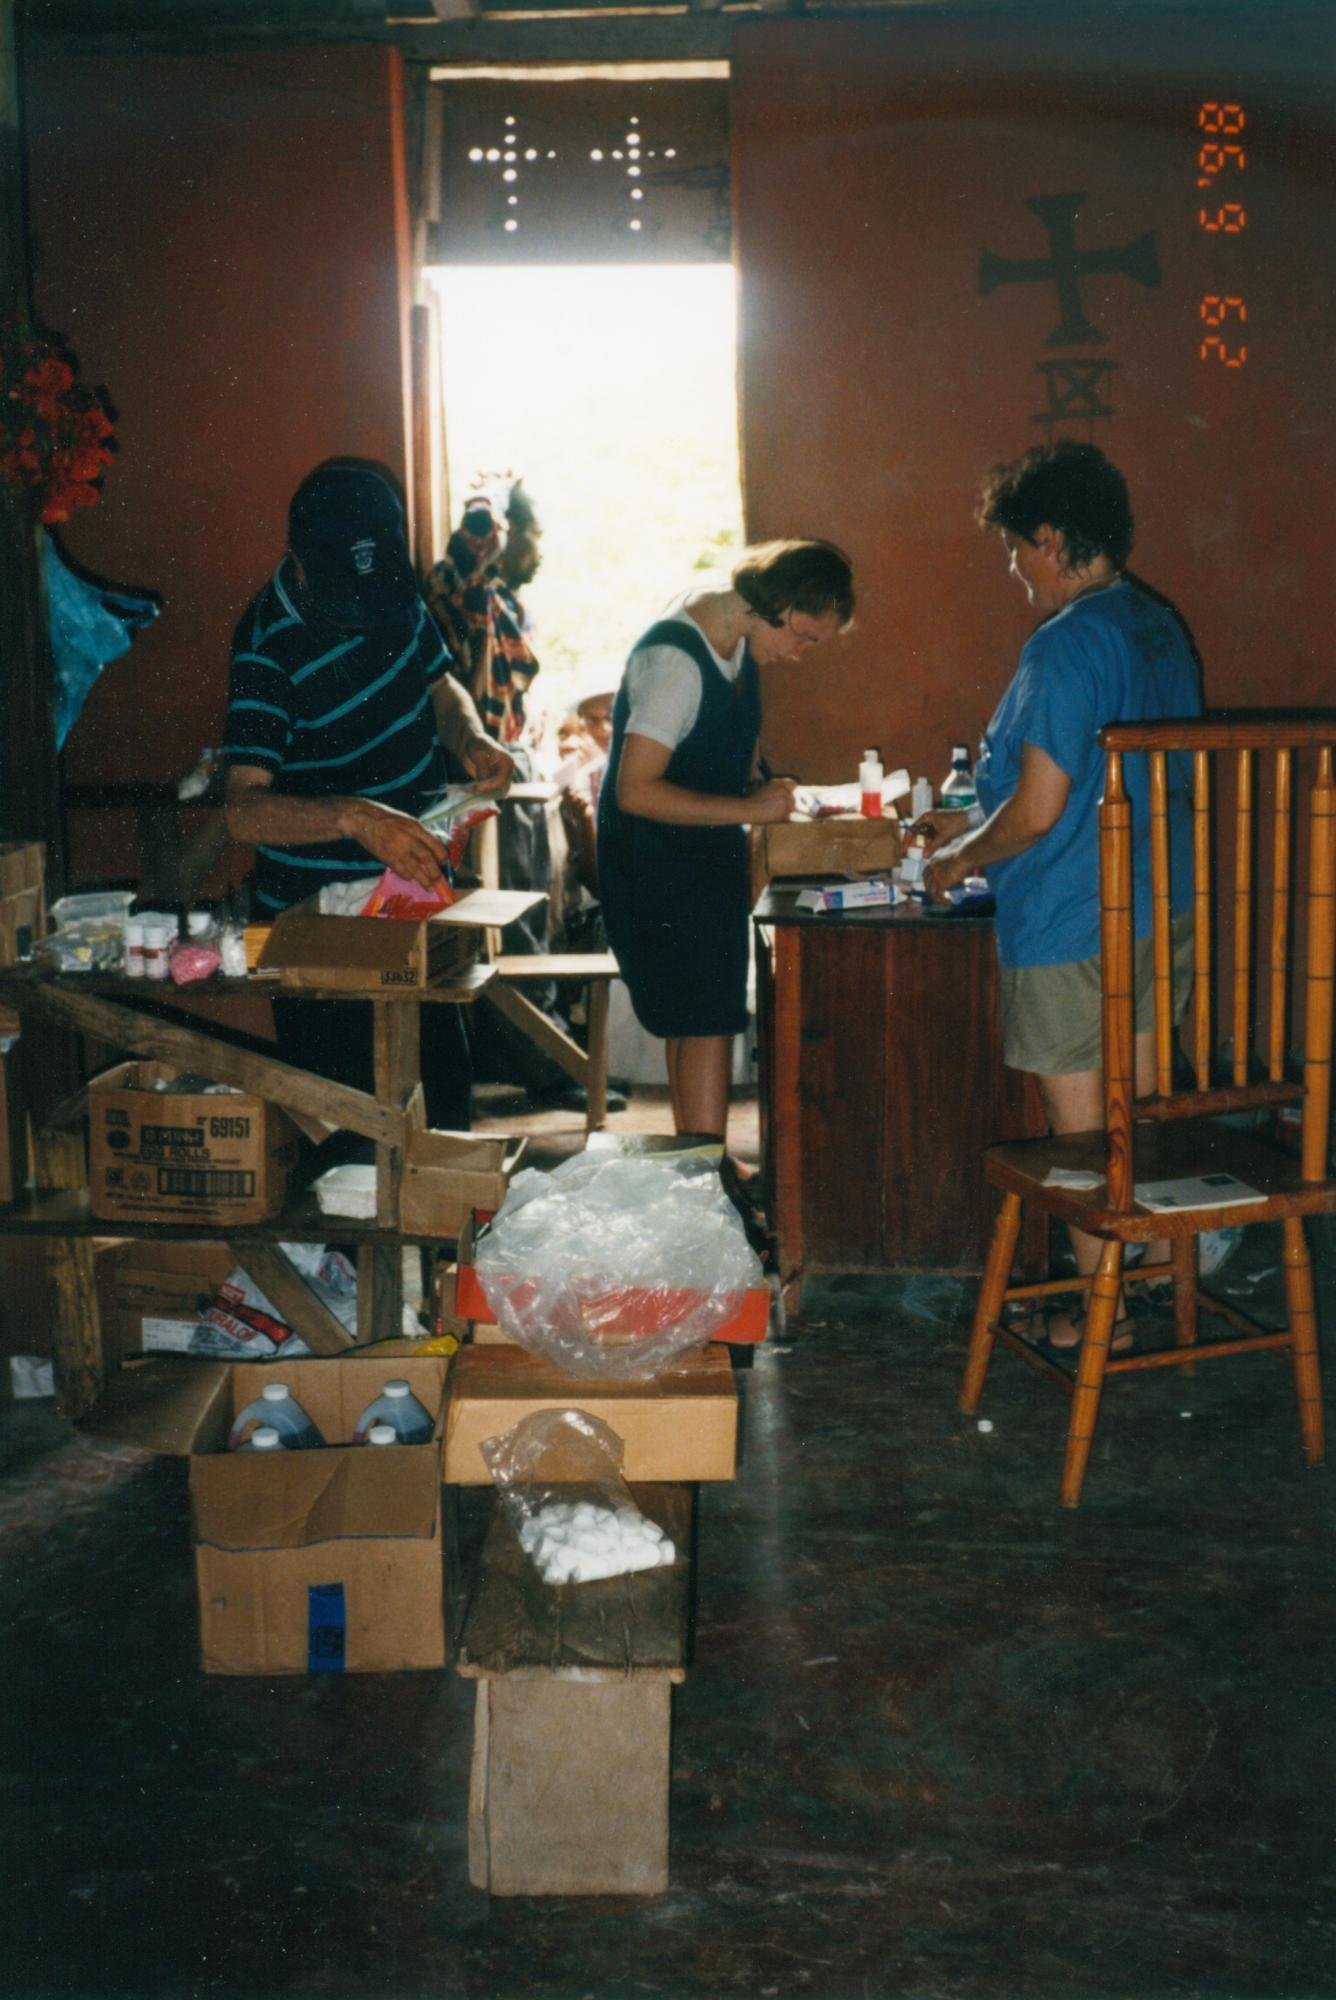 Maureen_1998_packing_unpacking_image13.jpg